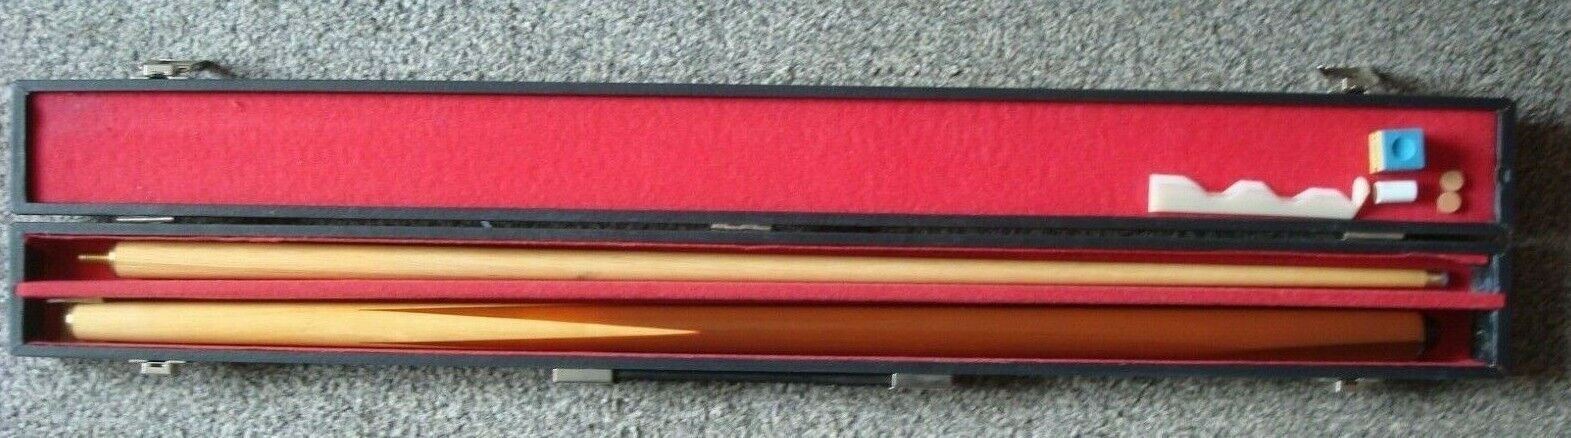 Pro one By Donnay Snooker Cue and case with Accessories L 15.75 oz.